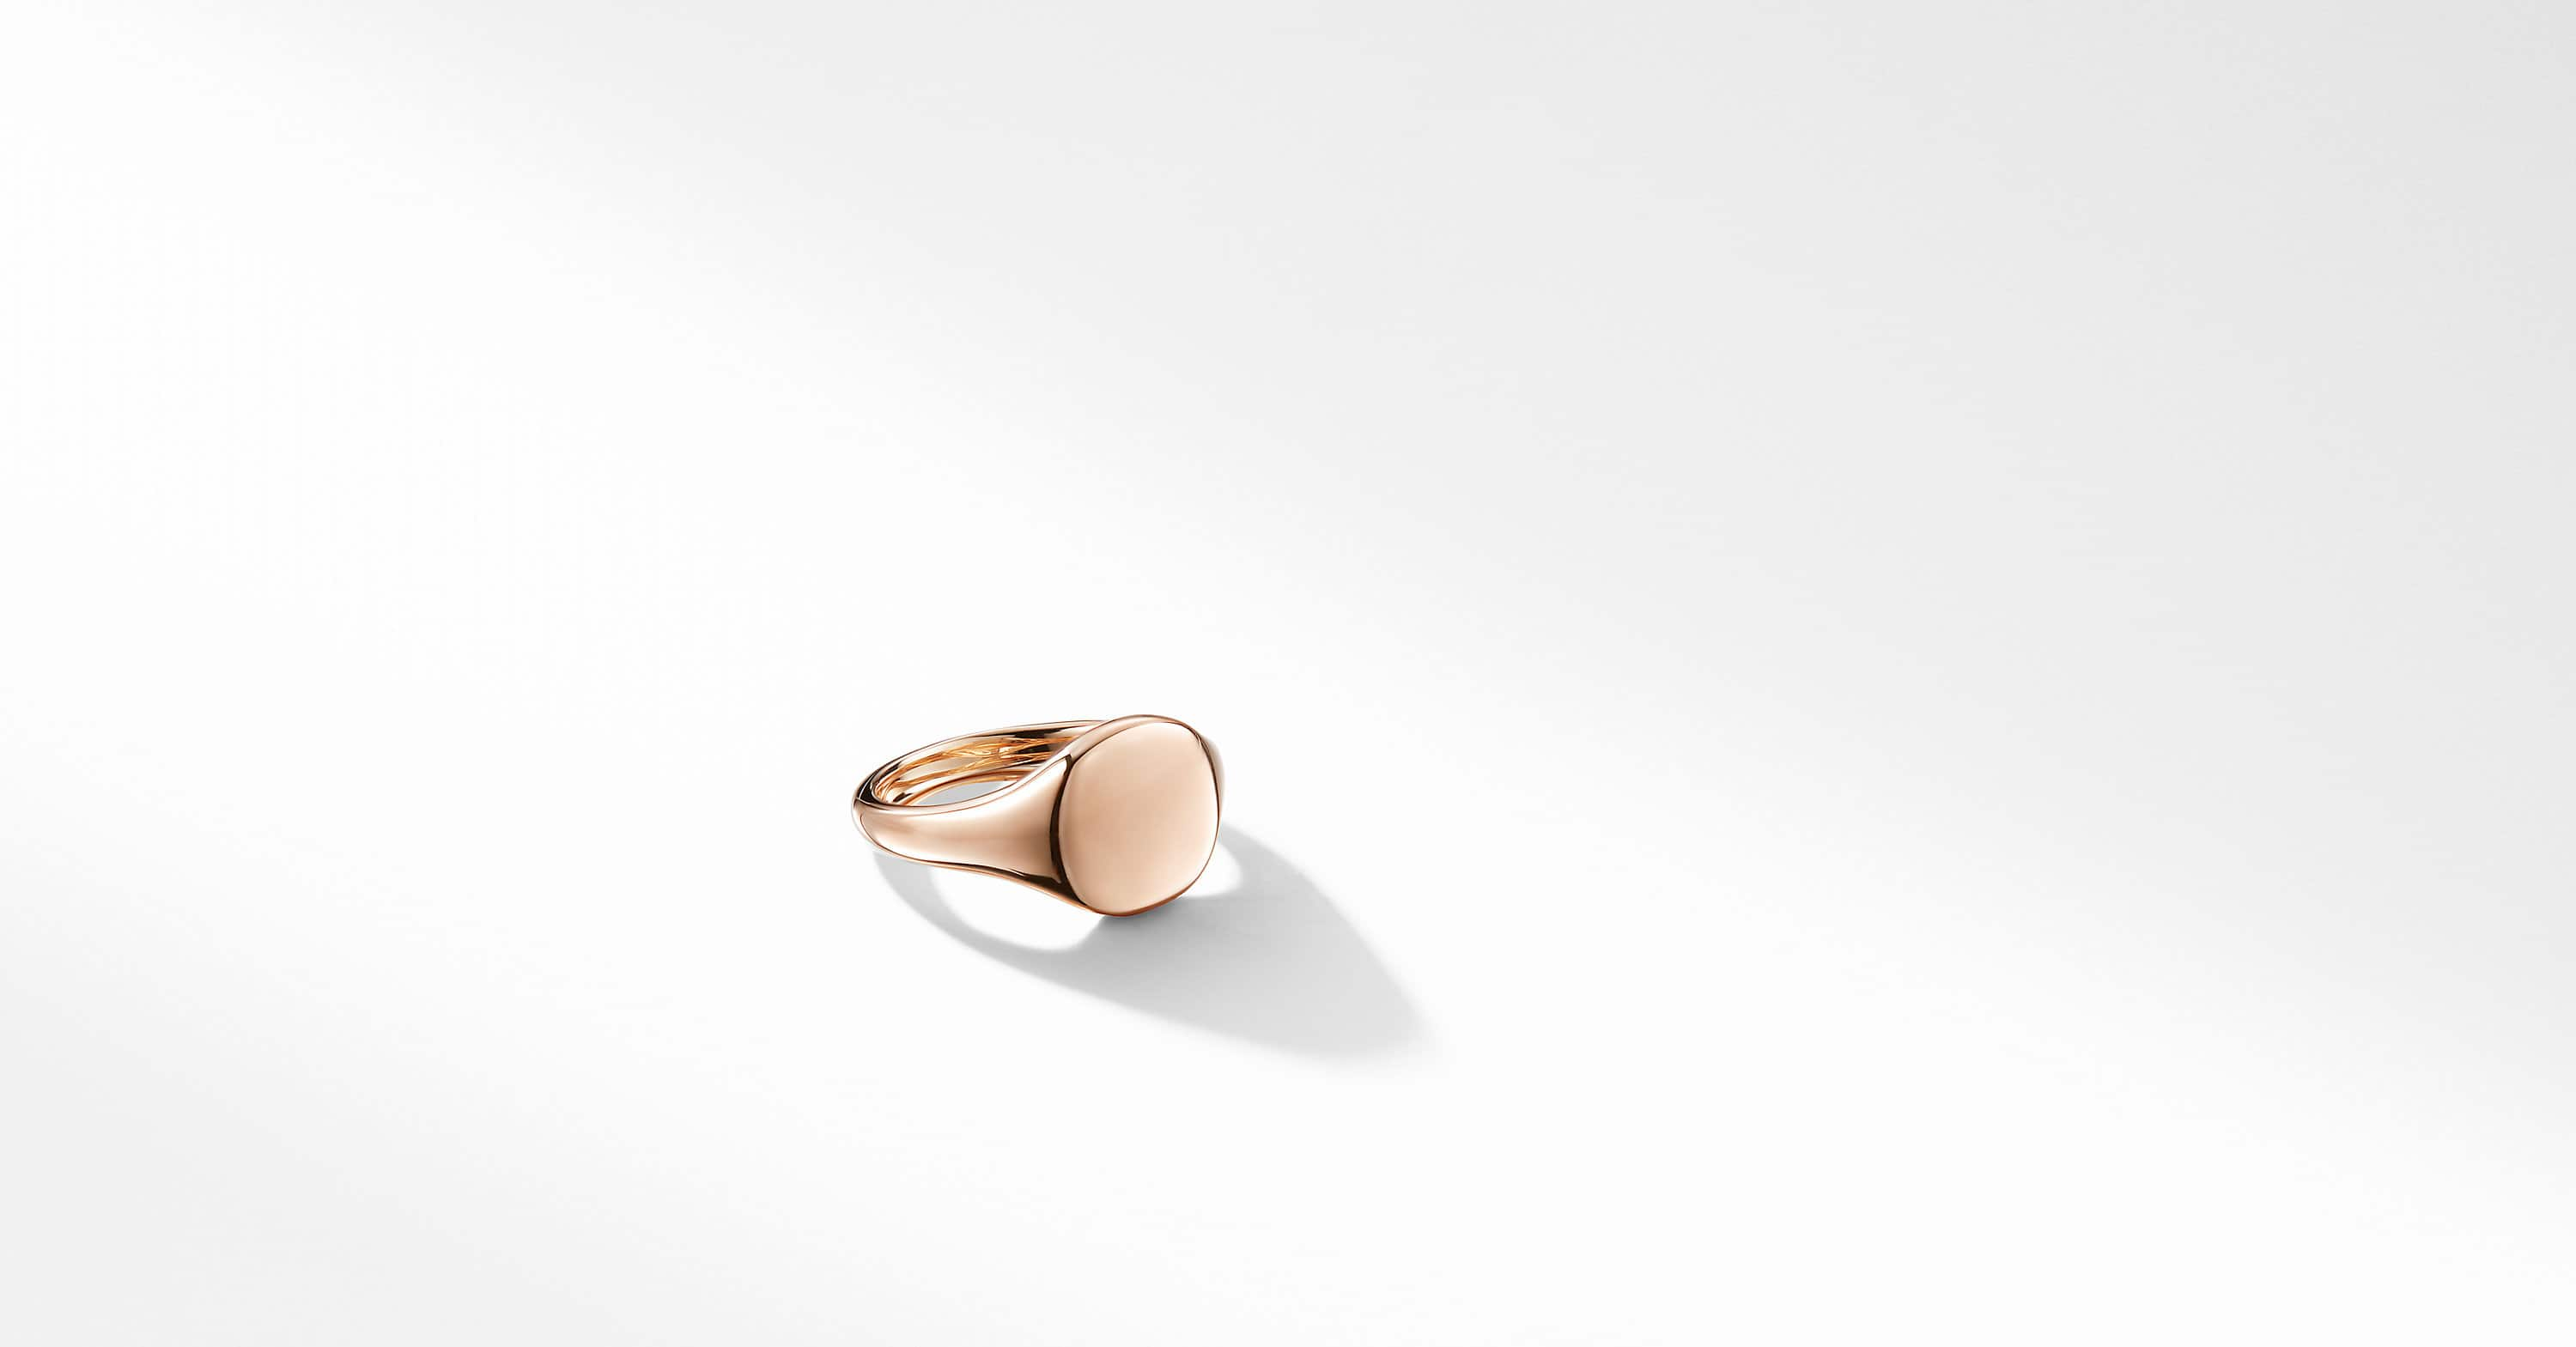 DY Signature Mini Pinky Ring in 18K Rose Gold